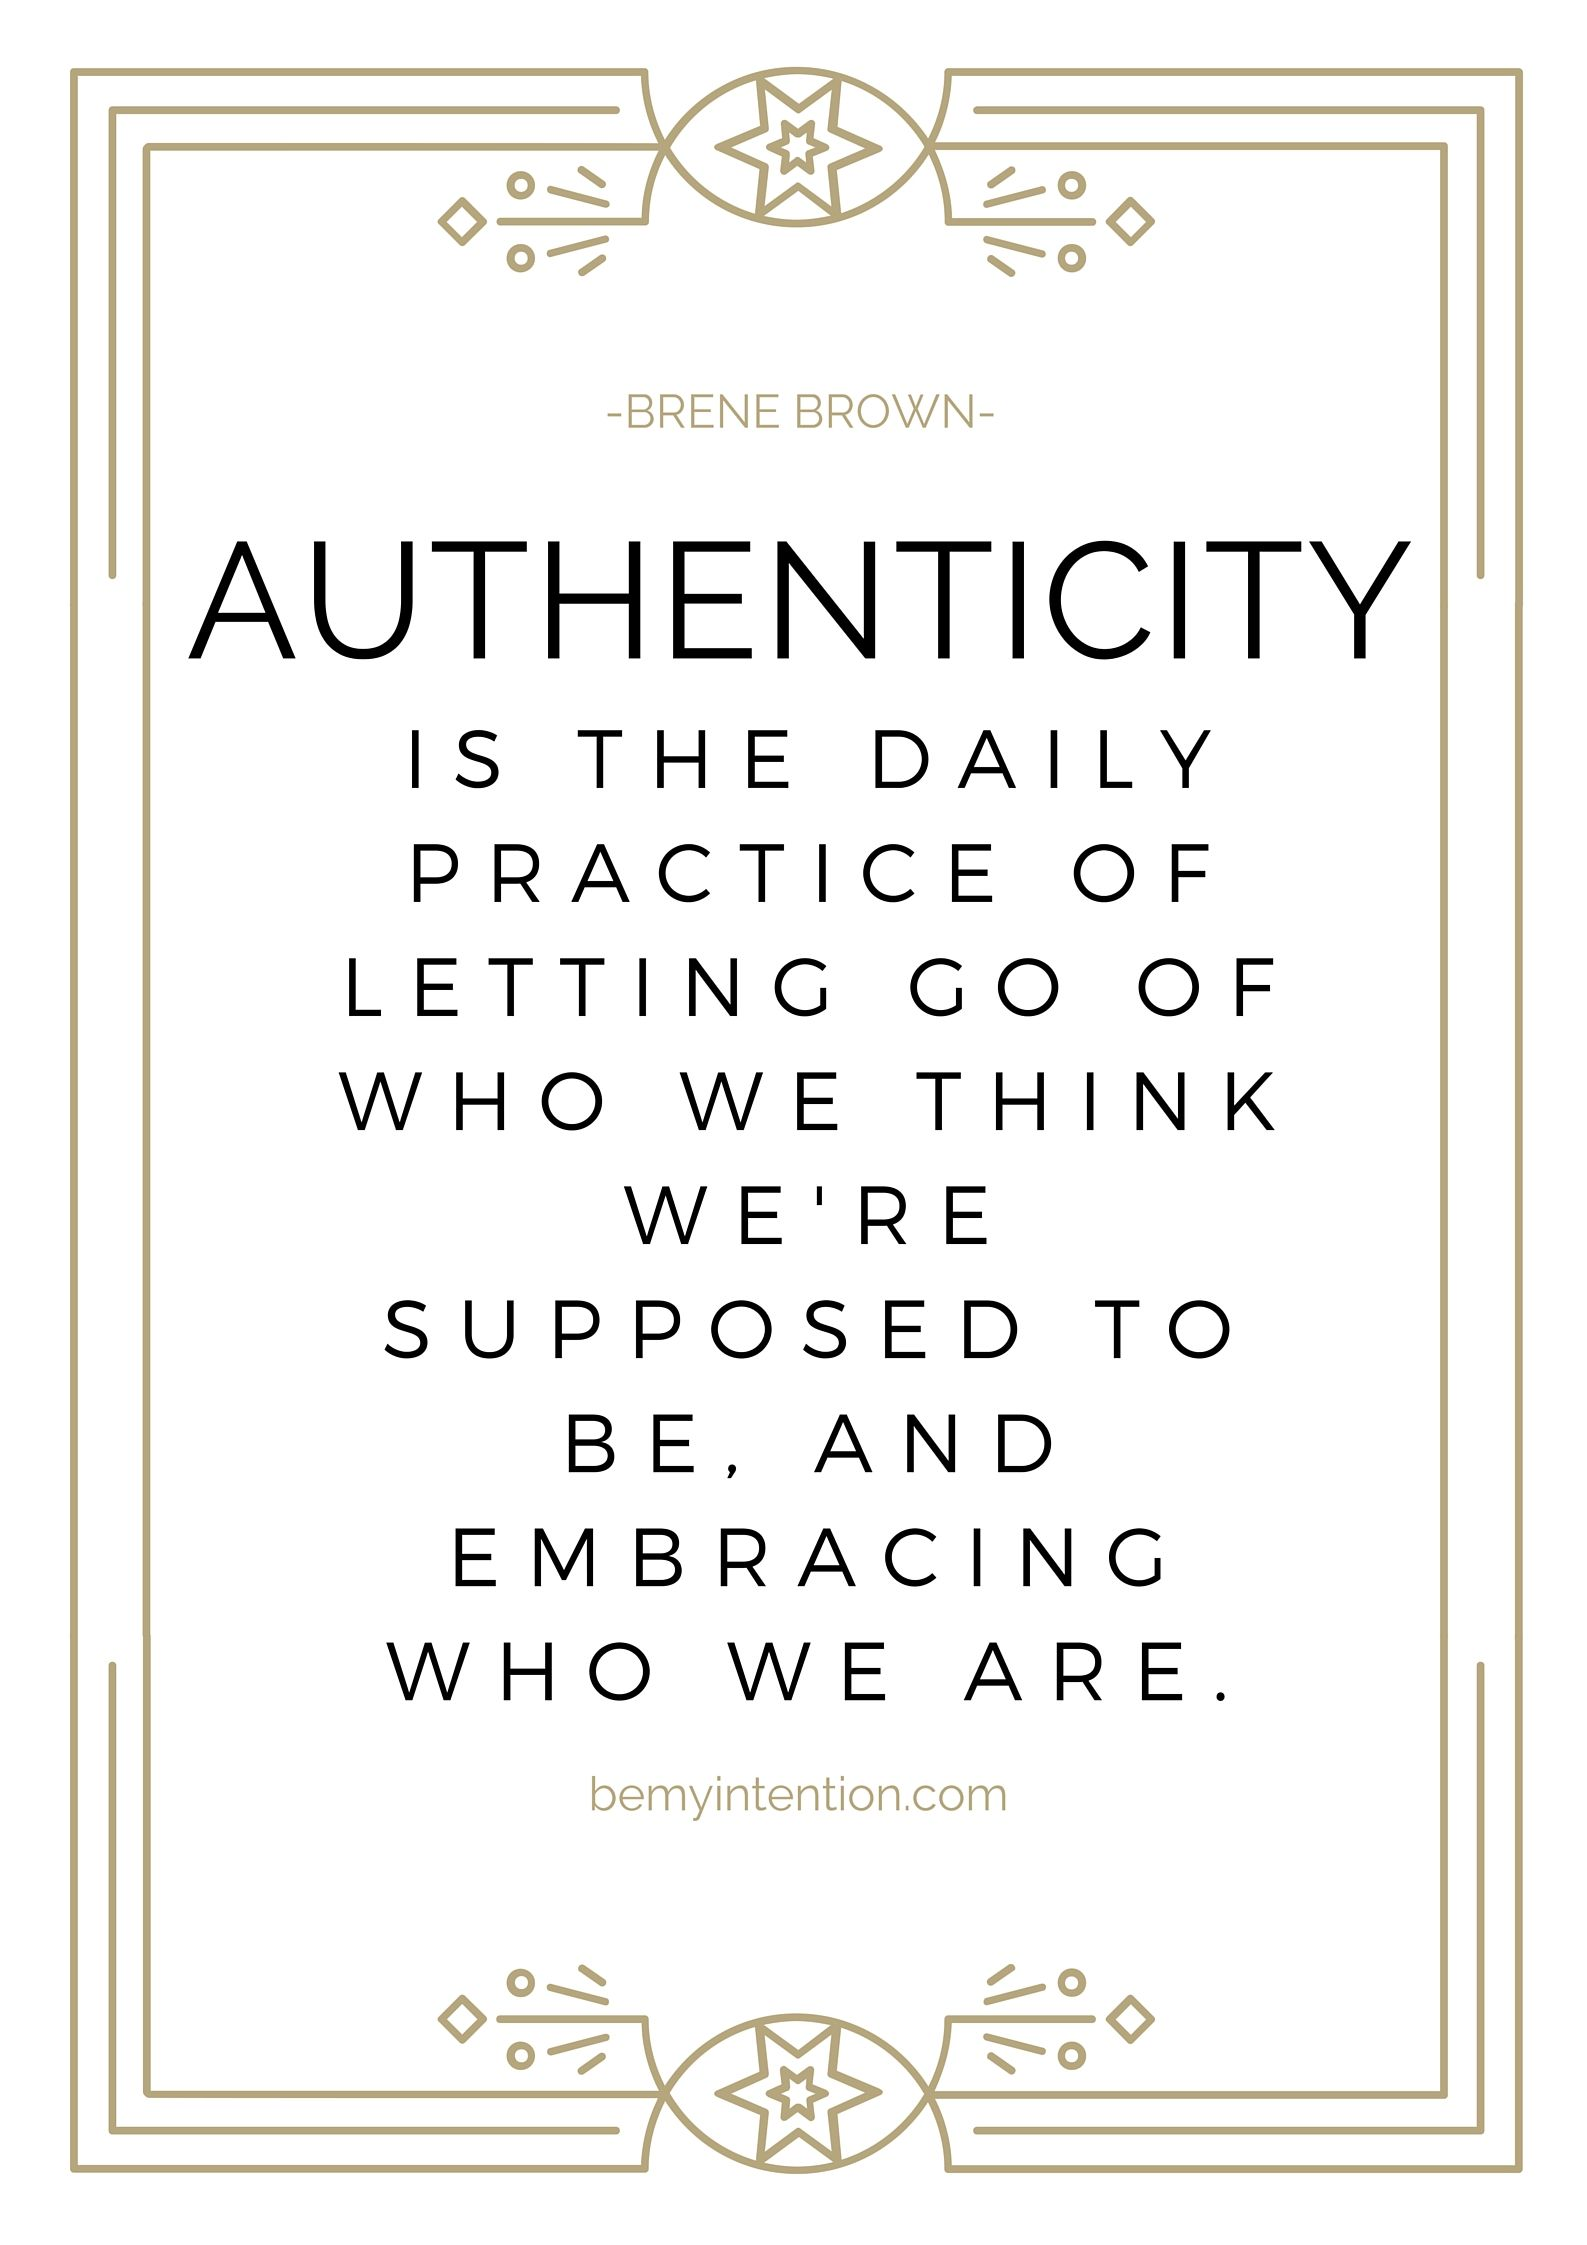 brene brown authenticity quote. new years goals. bemyintention.com ...